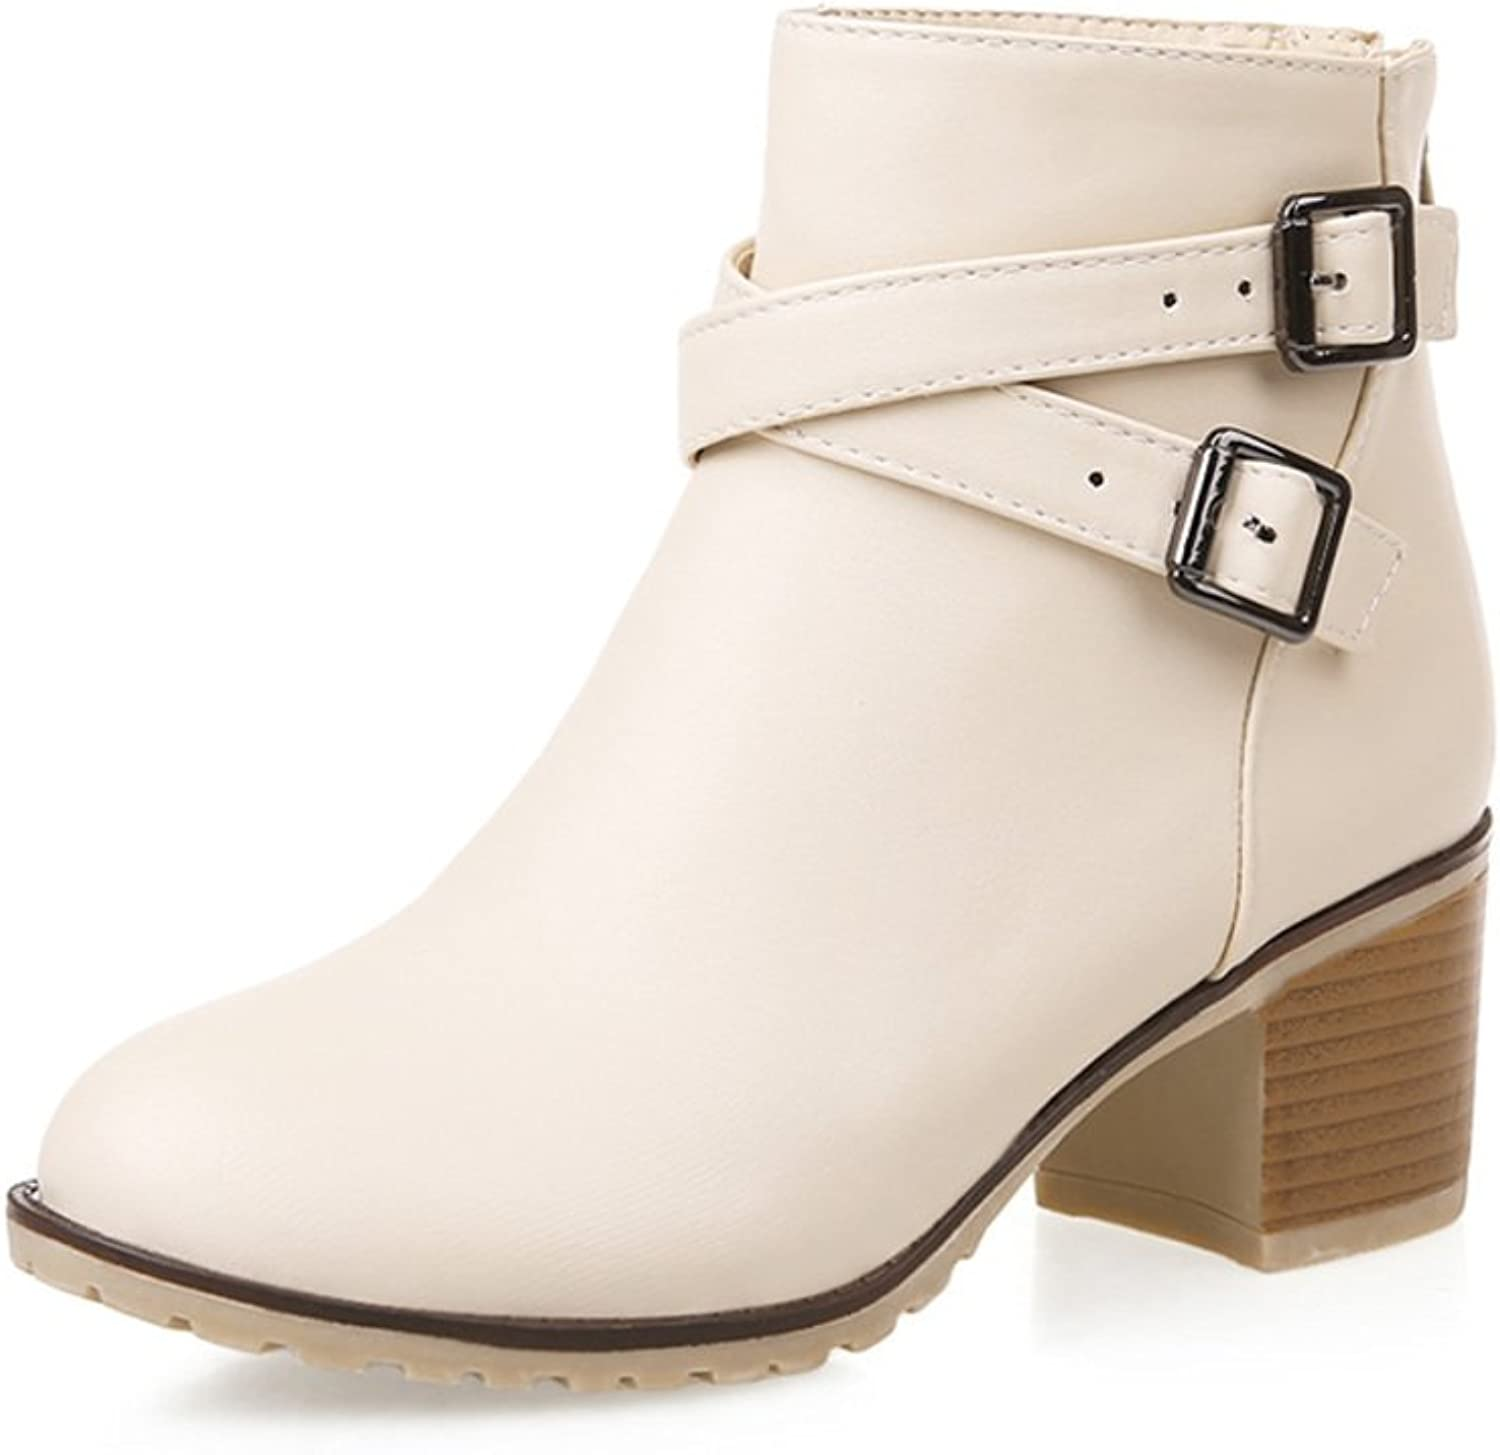 RHFDVGDS Zip chunky heels after the spring and autumn and winter boots Martin boots with middle heels nude boots belt buckle